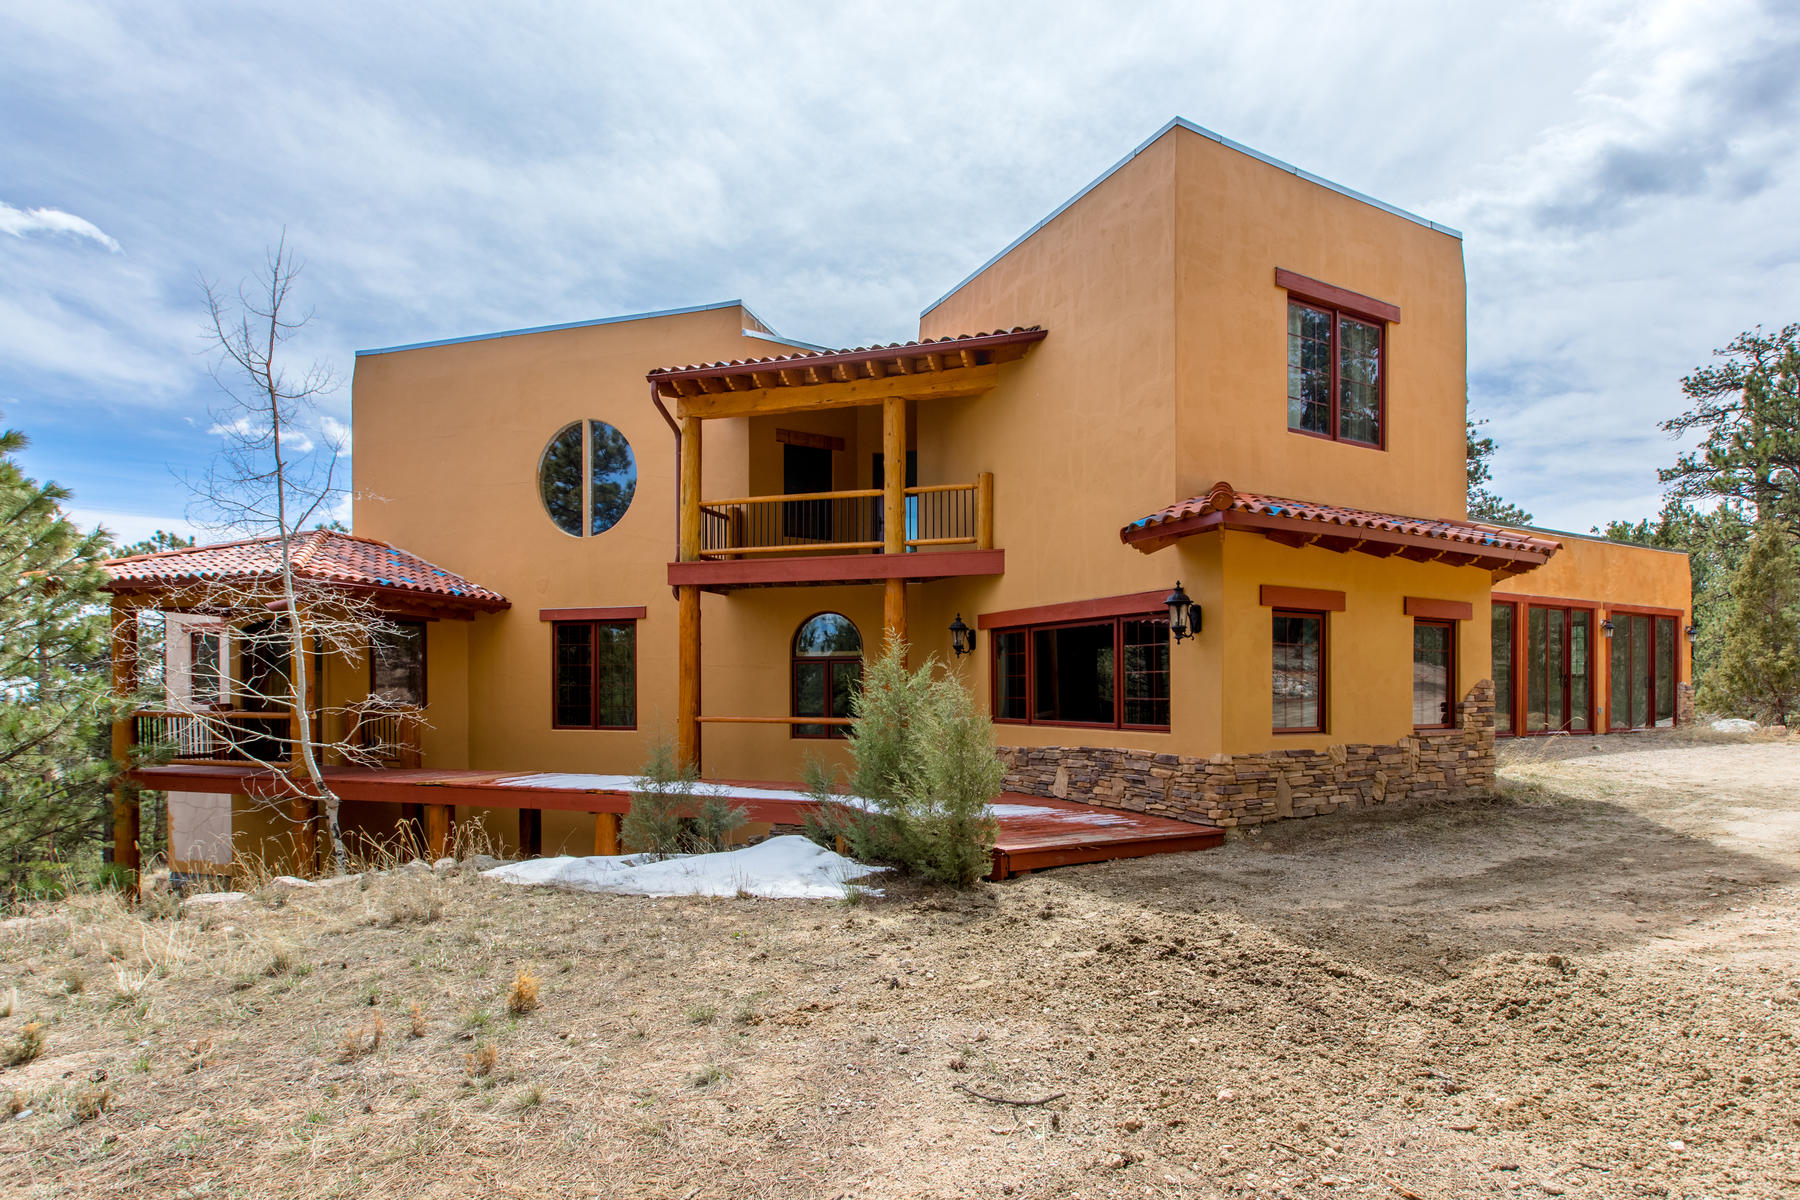 Single Family Homes for Active at Tranquil Location Boasts Inspiring Panoramic Mountain Views & Exquisite Details 4352 County Road 72 Bailey, Colorado 80421 United States